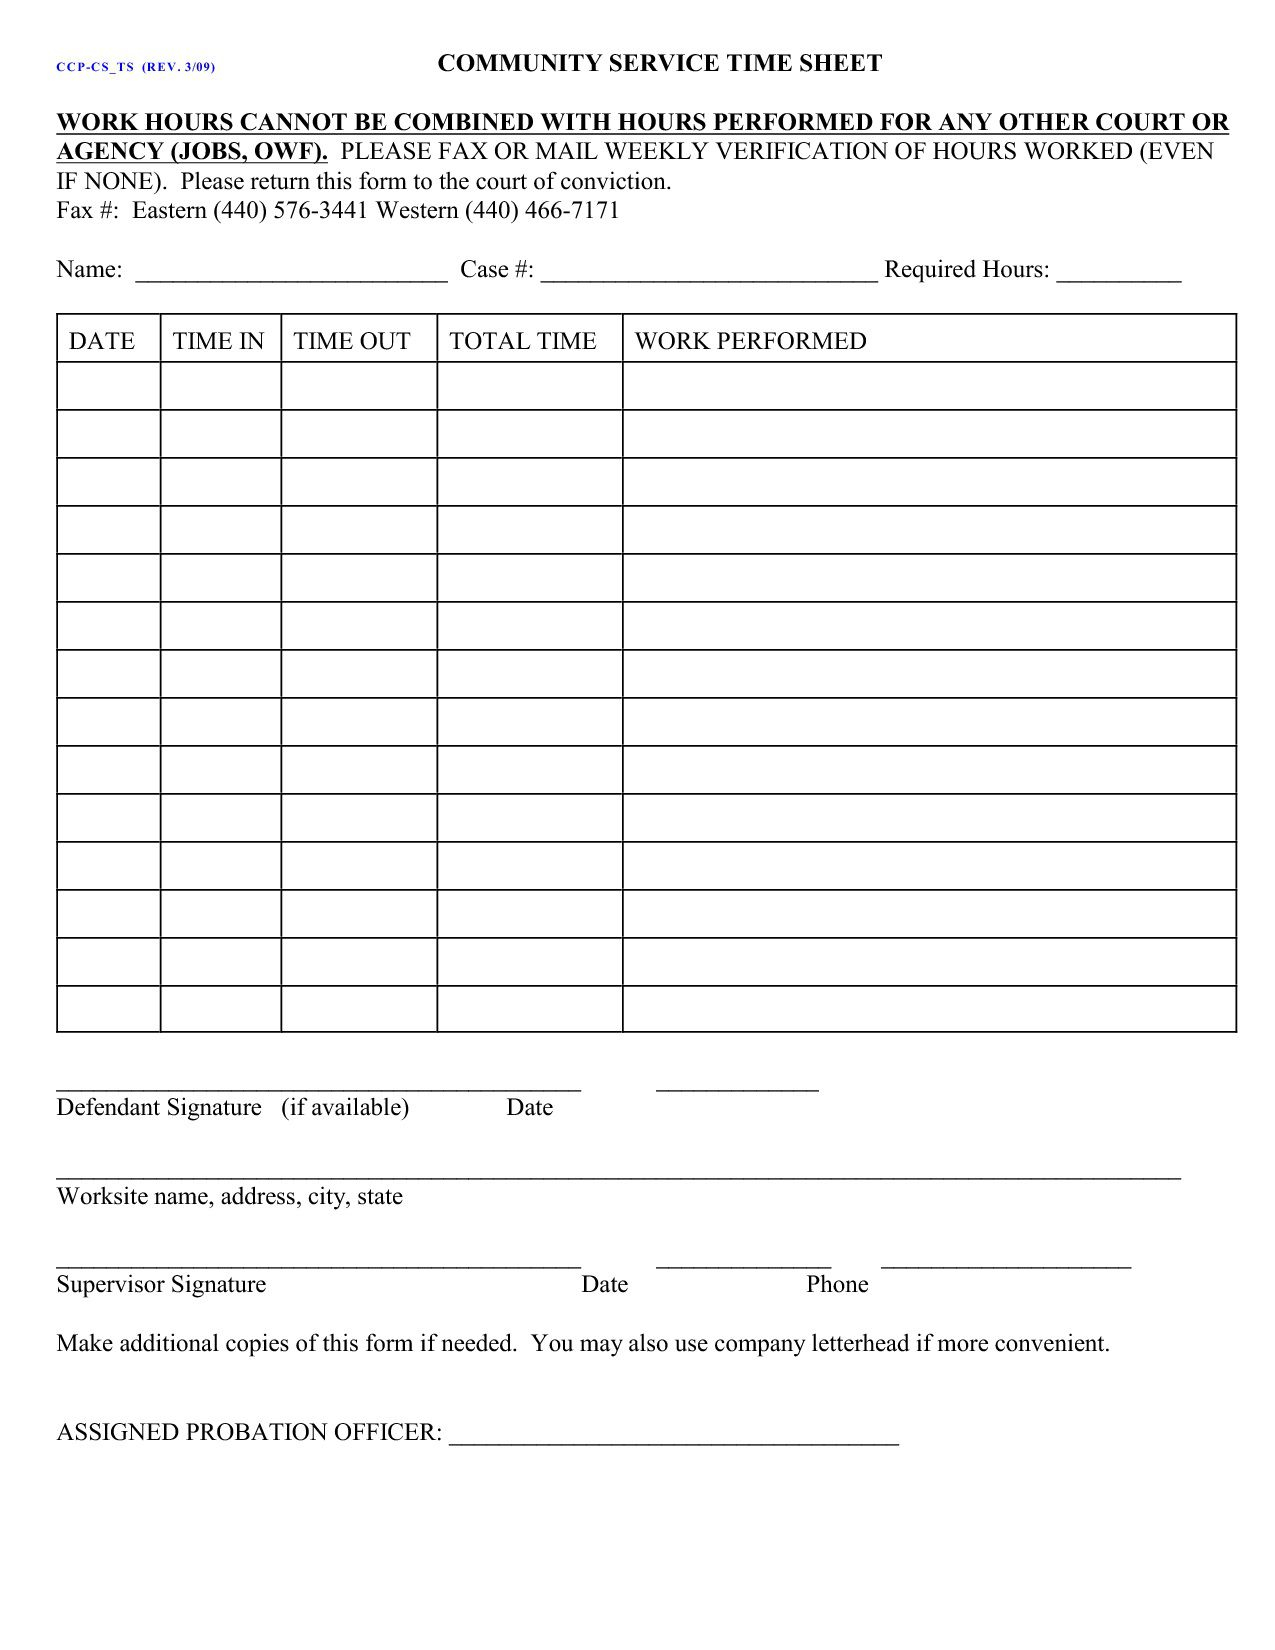 003 Fearsome Volunteer Hour Form Template Inspiration  Service Community PdfFull